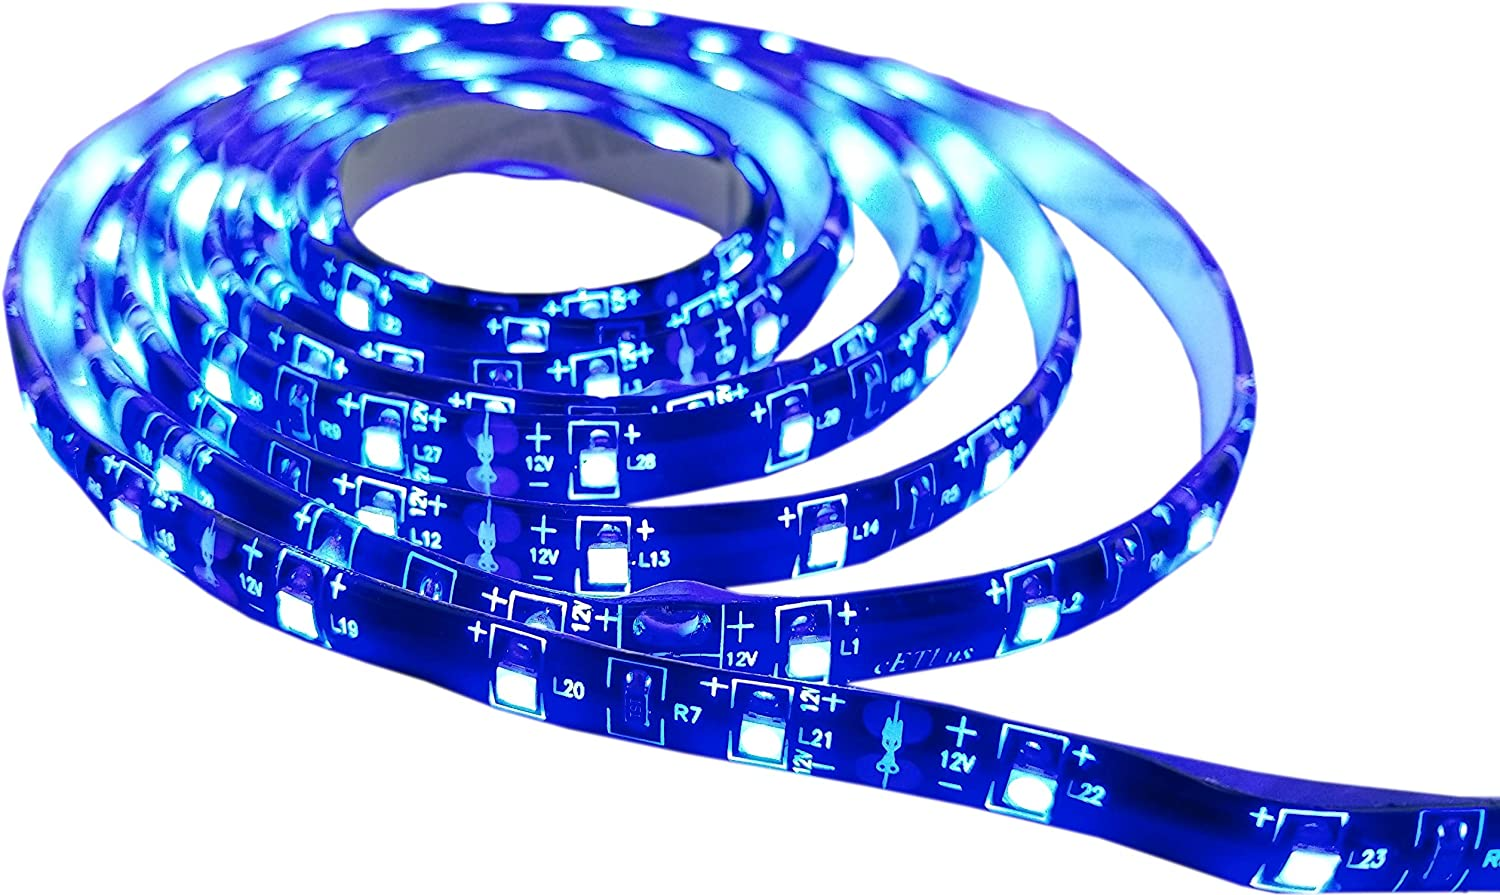 2 PACK 20 inch Cool White Marine LED Light Strips IP65 Waterproof Rating